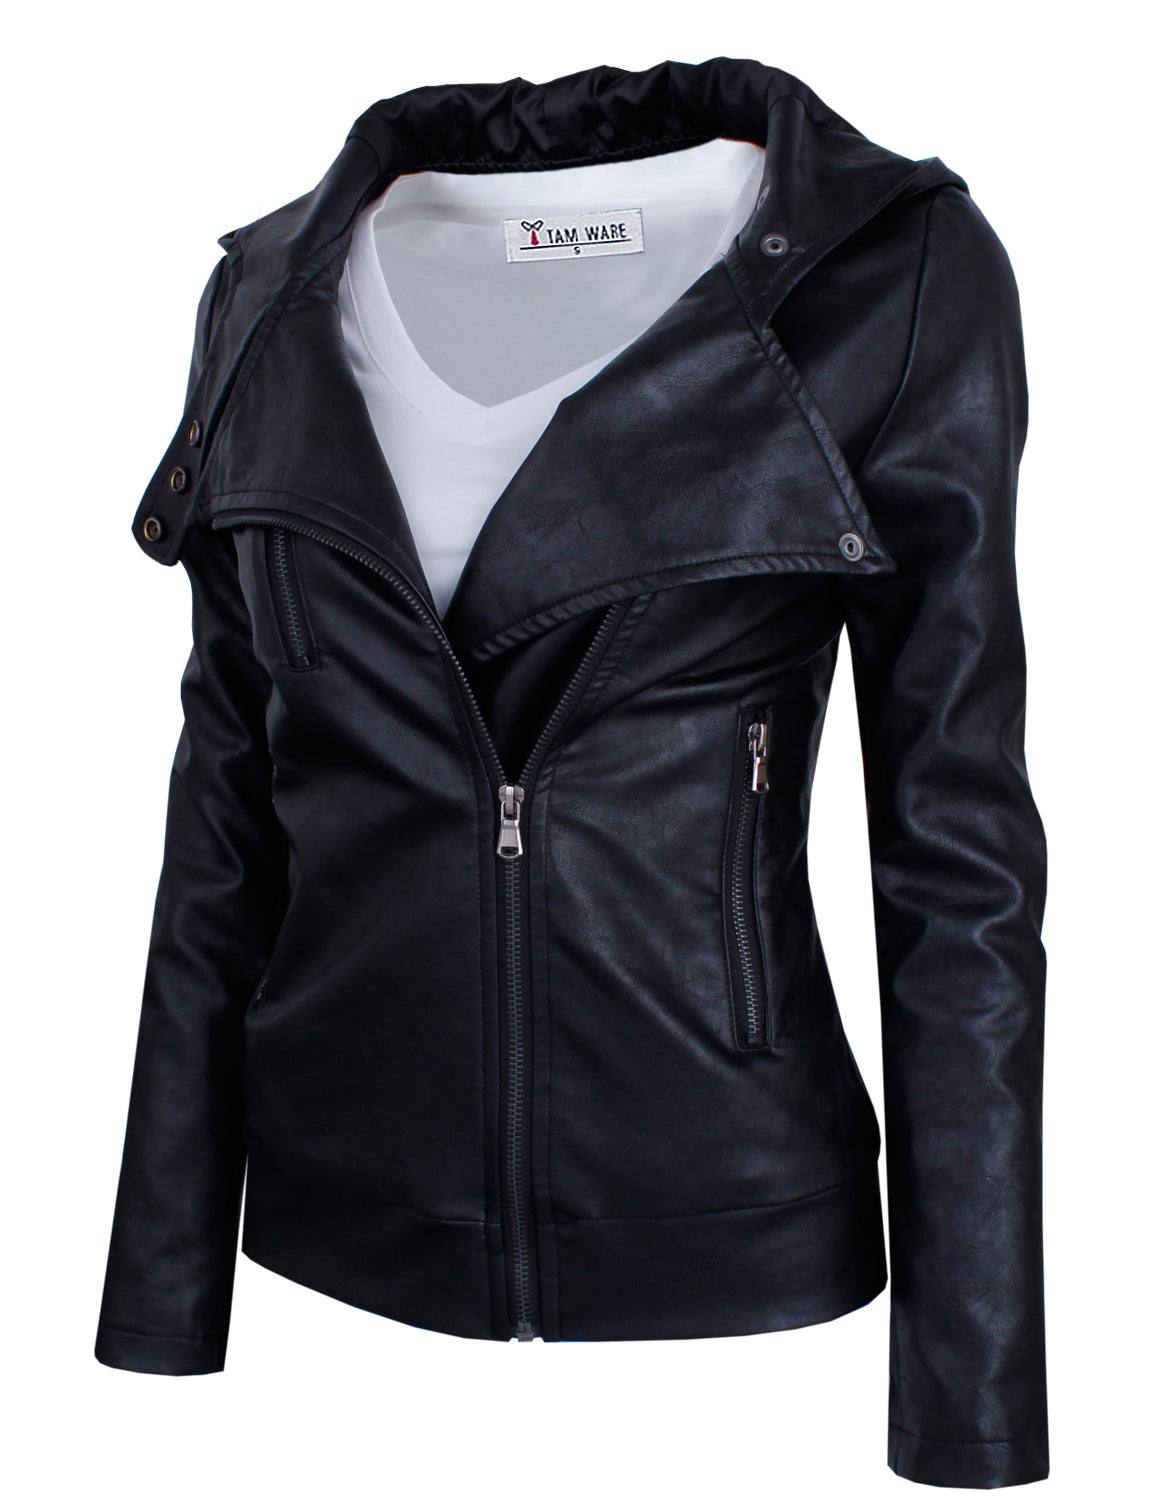 69773c6d98ad TAM WARE Women's Fashionable Asymmetrical Zip-up Faux Leather Jacket